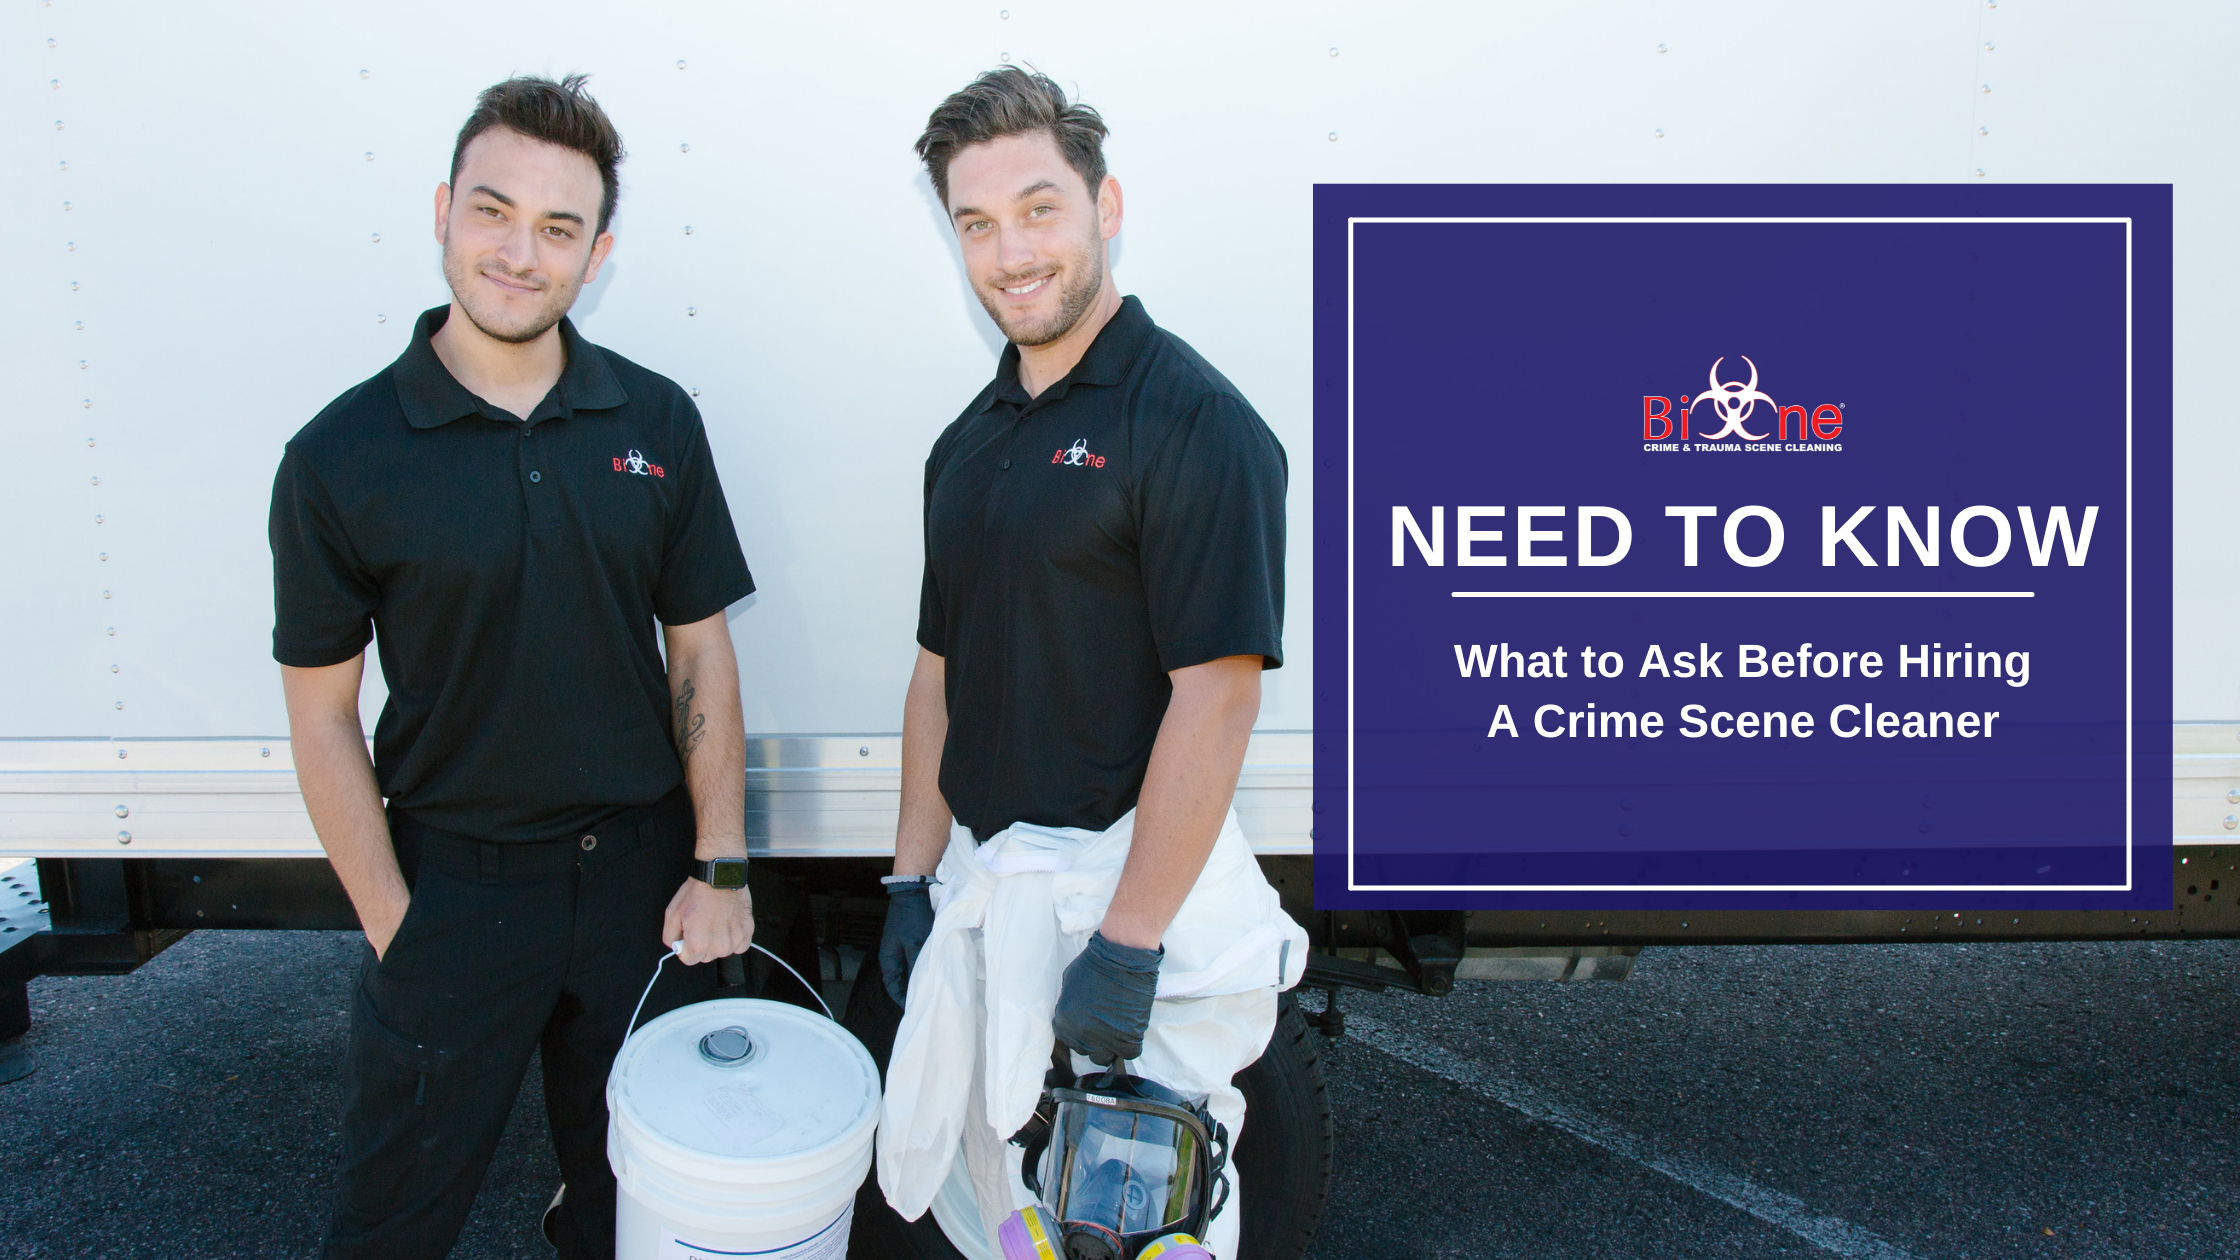 Bio-One What to Ask Before Hiring a Crime Scene Cleaner